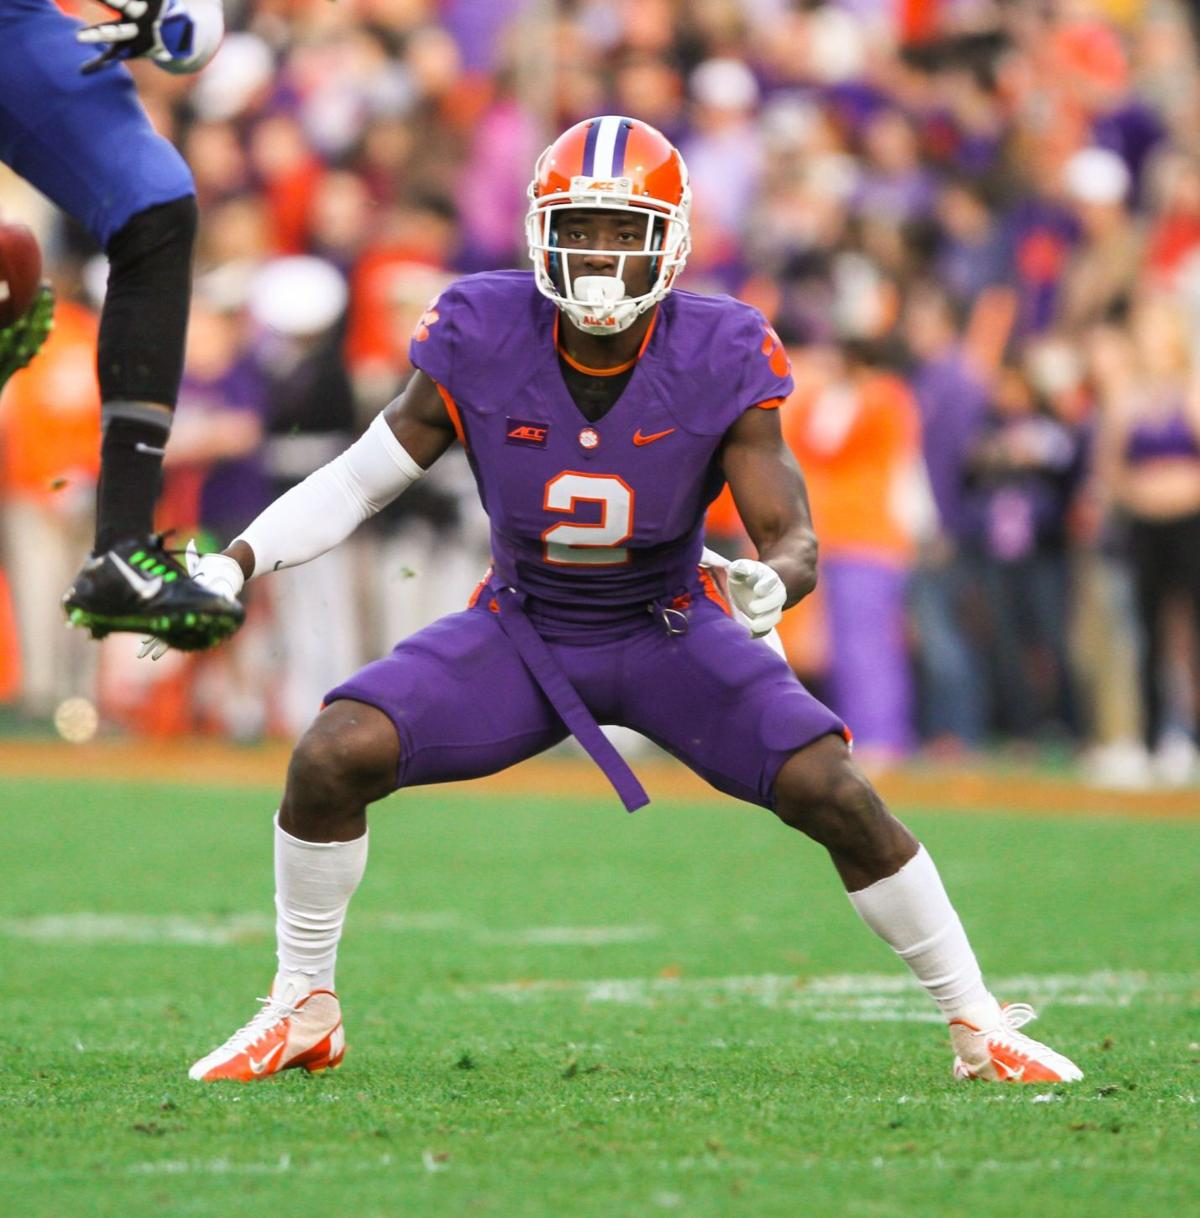 Offenses have stayed away from Clemson's Alexander